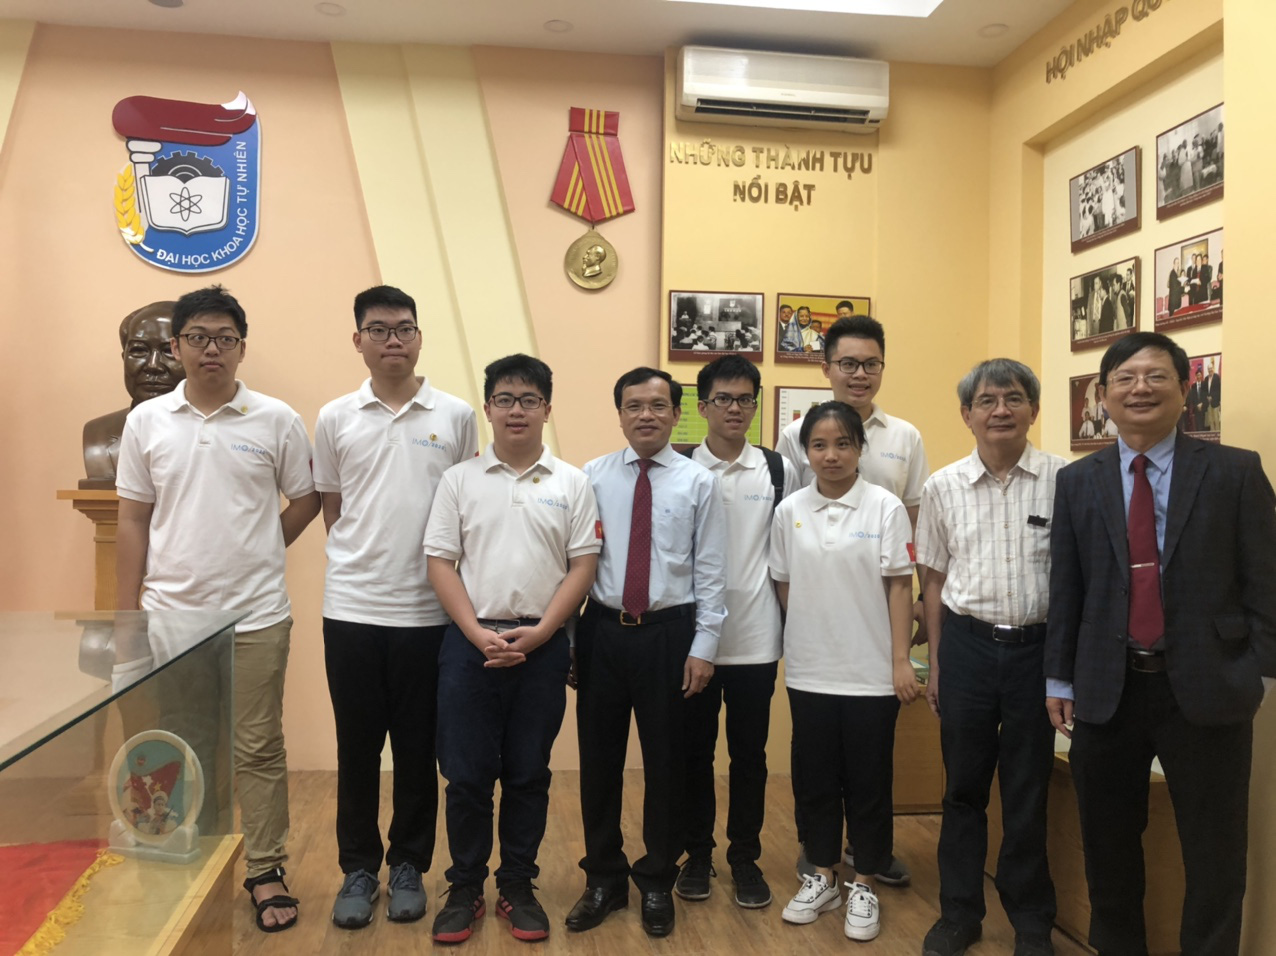 Vietnamese team wins 2 gold medals at Int'l Mathematical Olympiad 2020